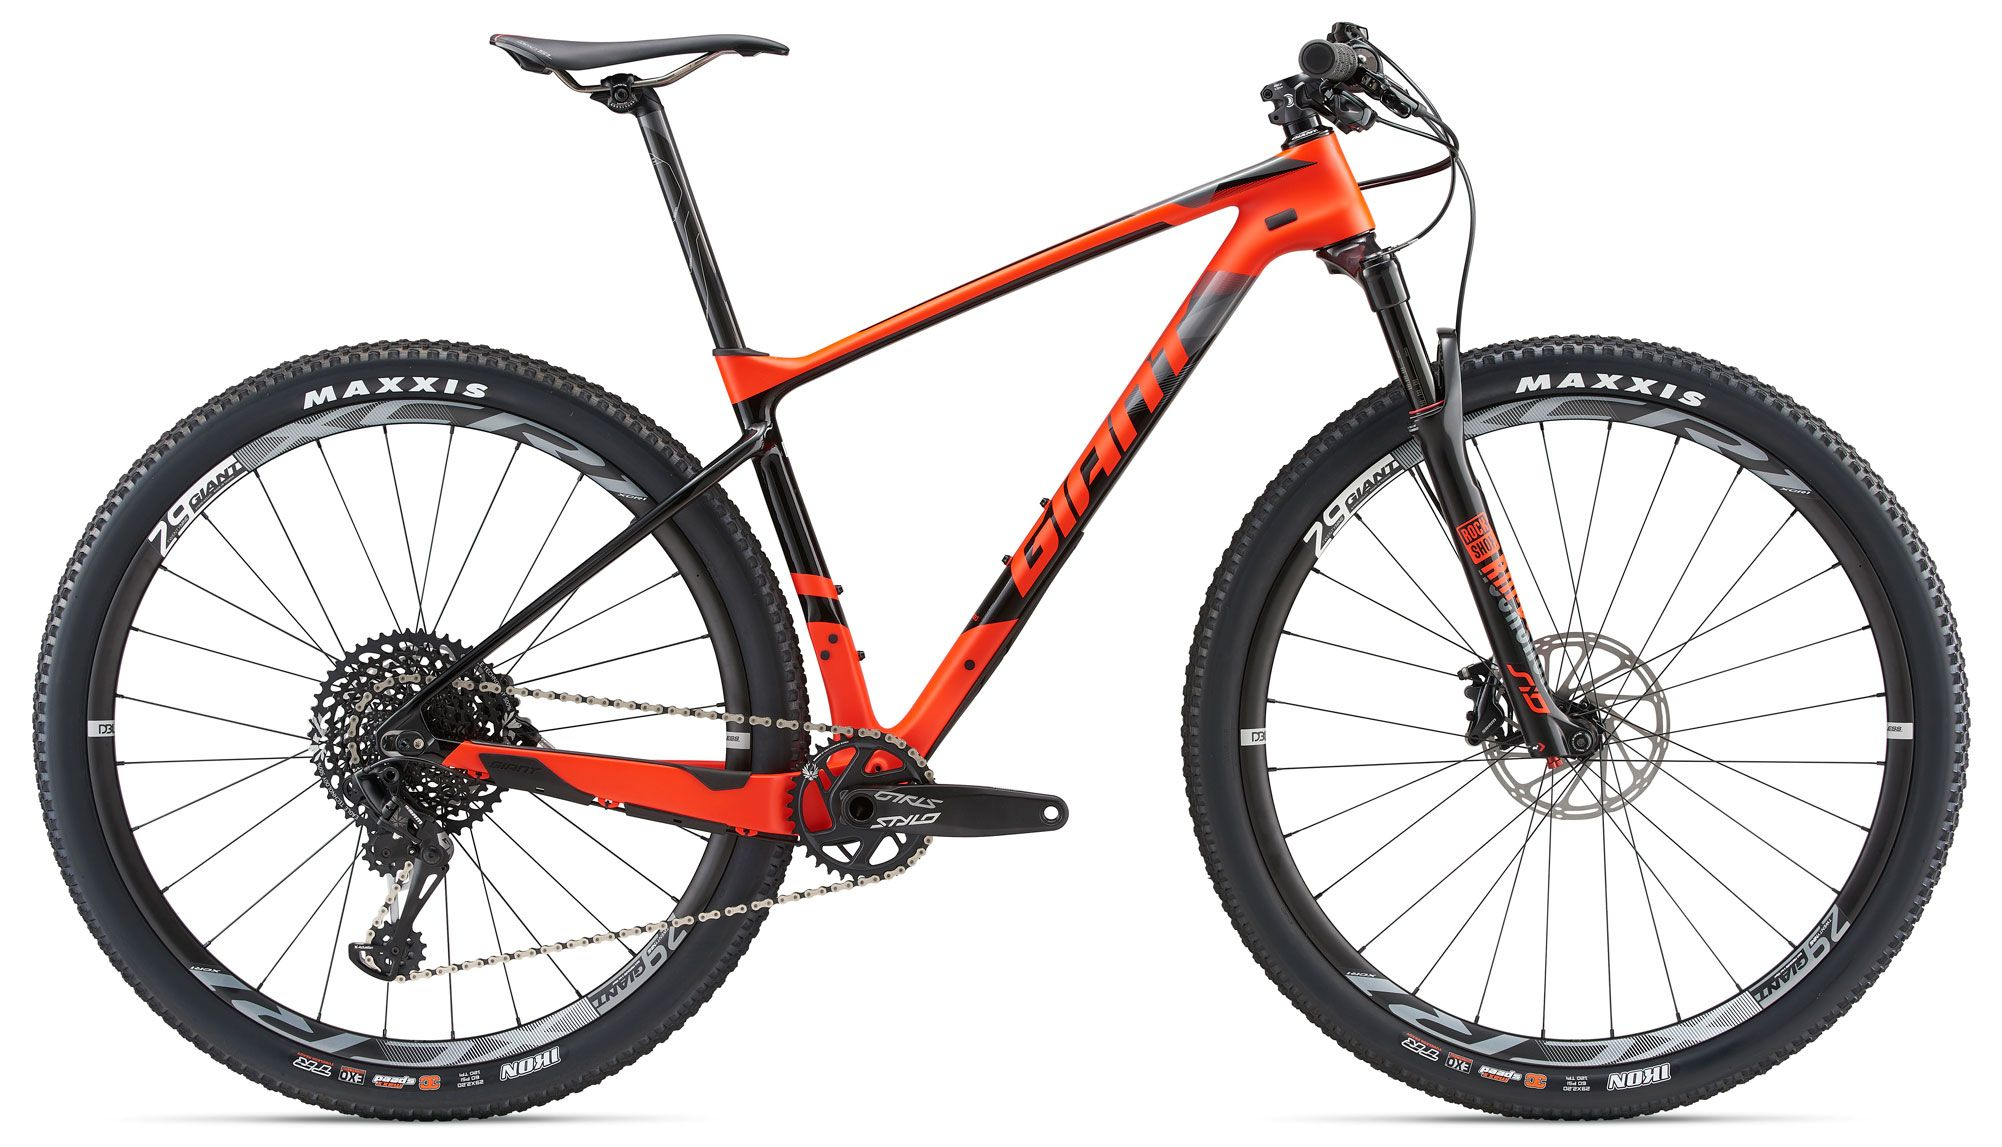 Велосипед Giant XTC Advanced 29er 1 2018 giant xtc advanced 27 5 3 2016 comp yellow